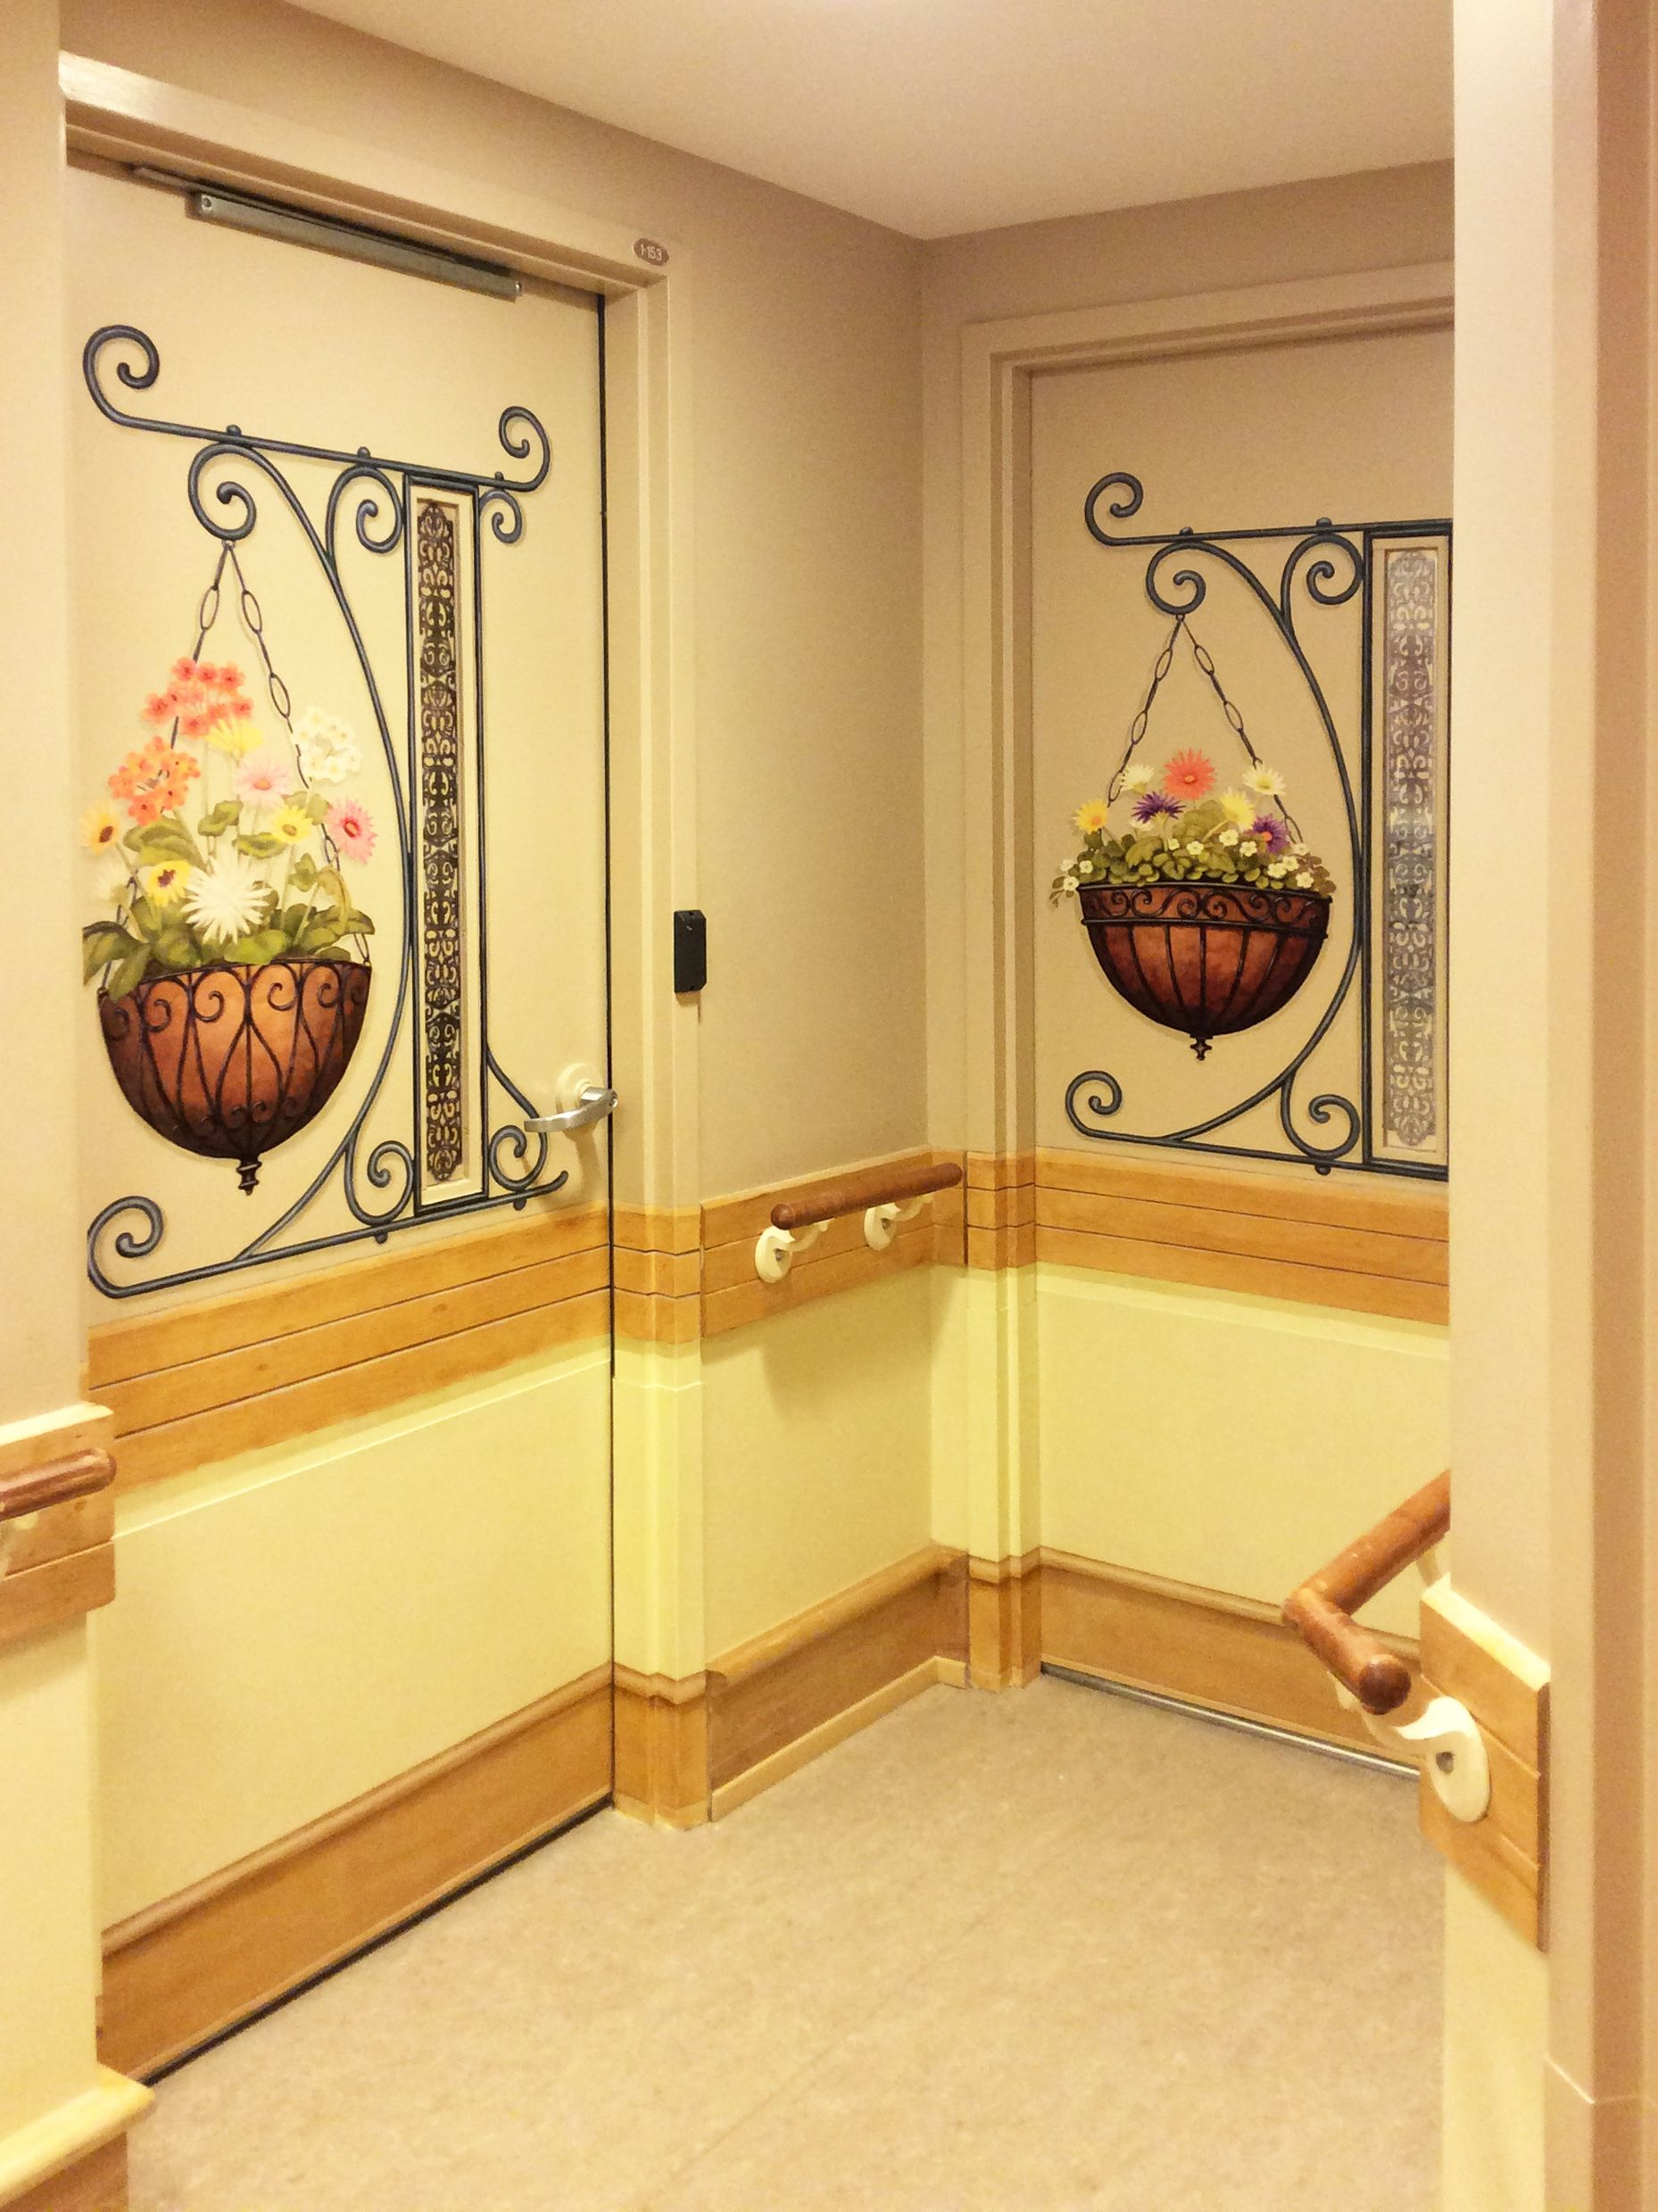 The Same Theme With A Twist Different Flower Baskets